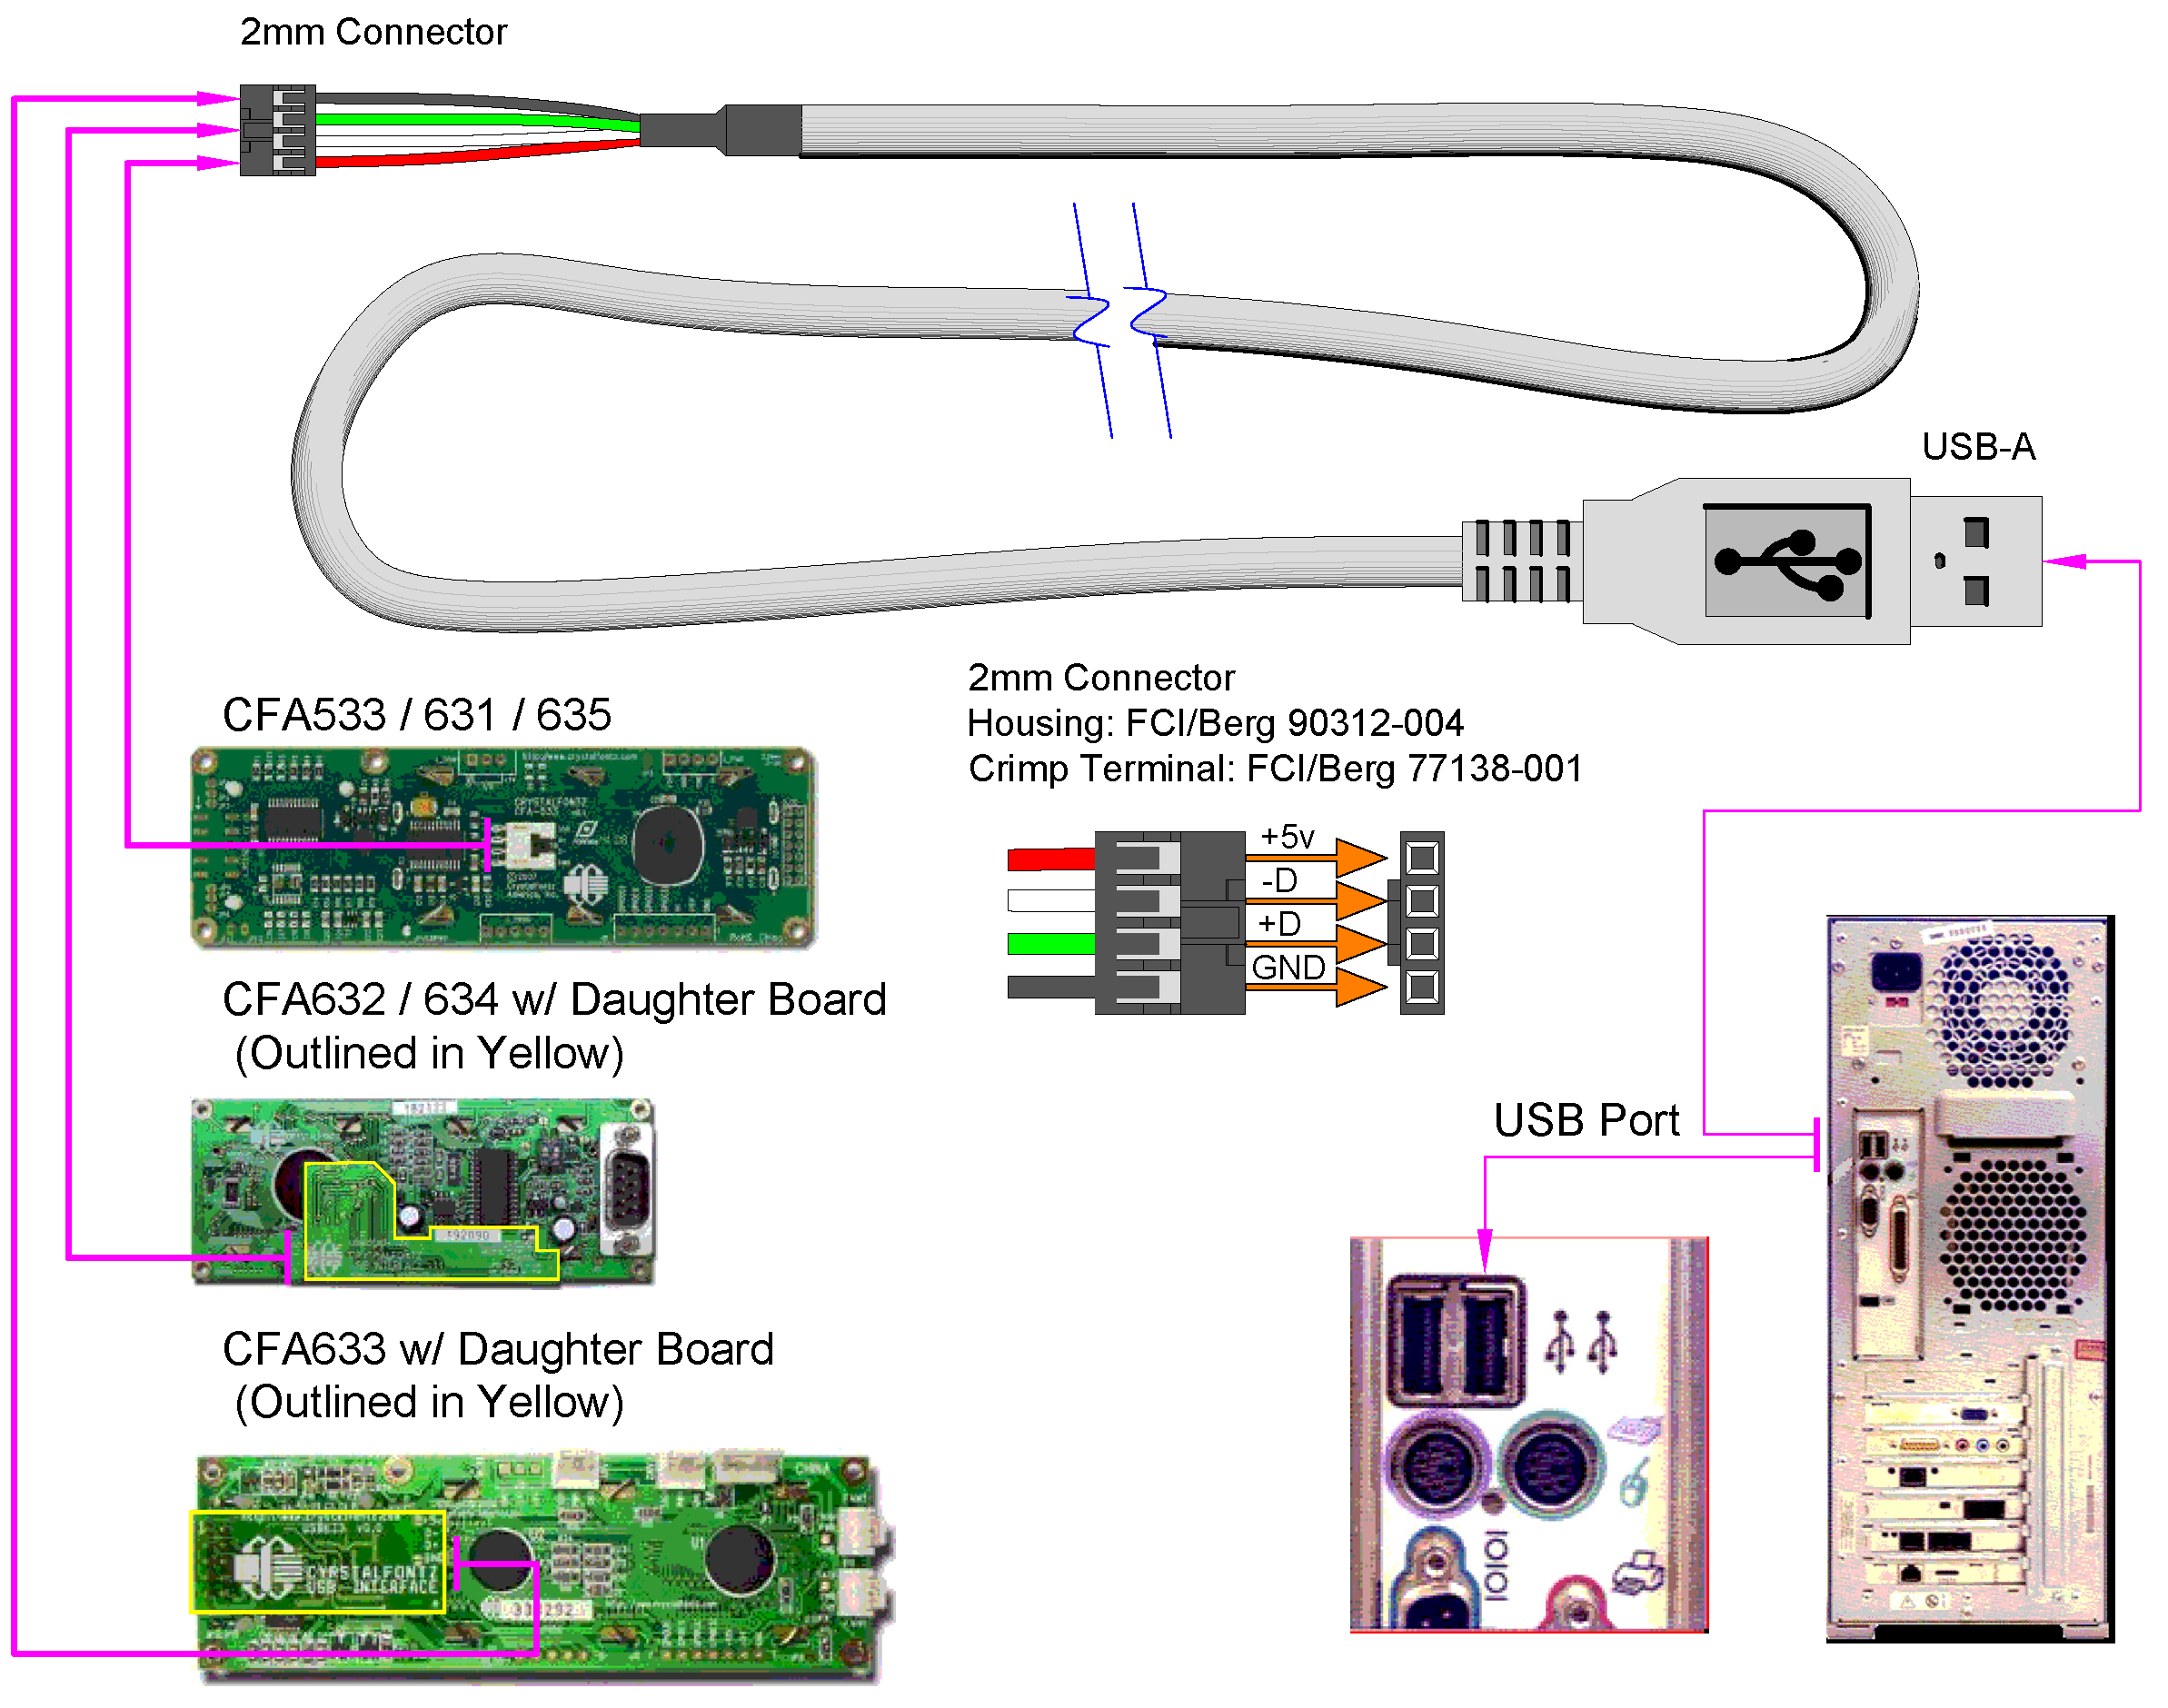 Beautiful Usb Cable Wiring Schematic Images - Electrical and ...